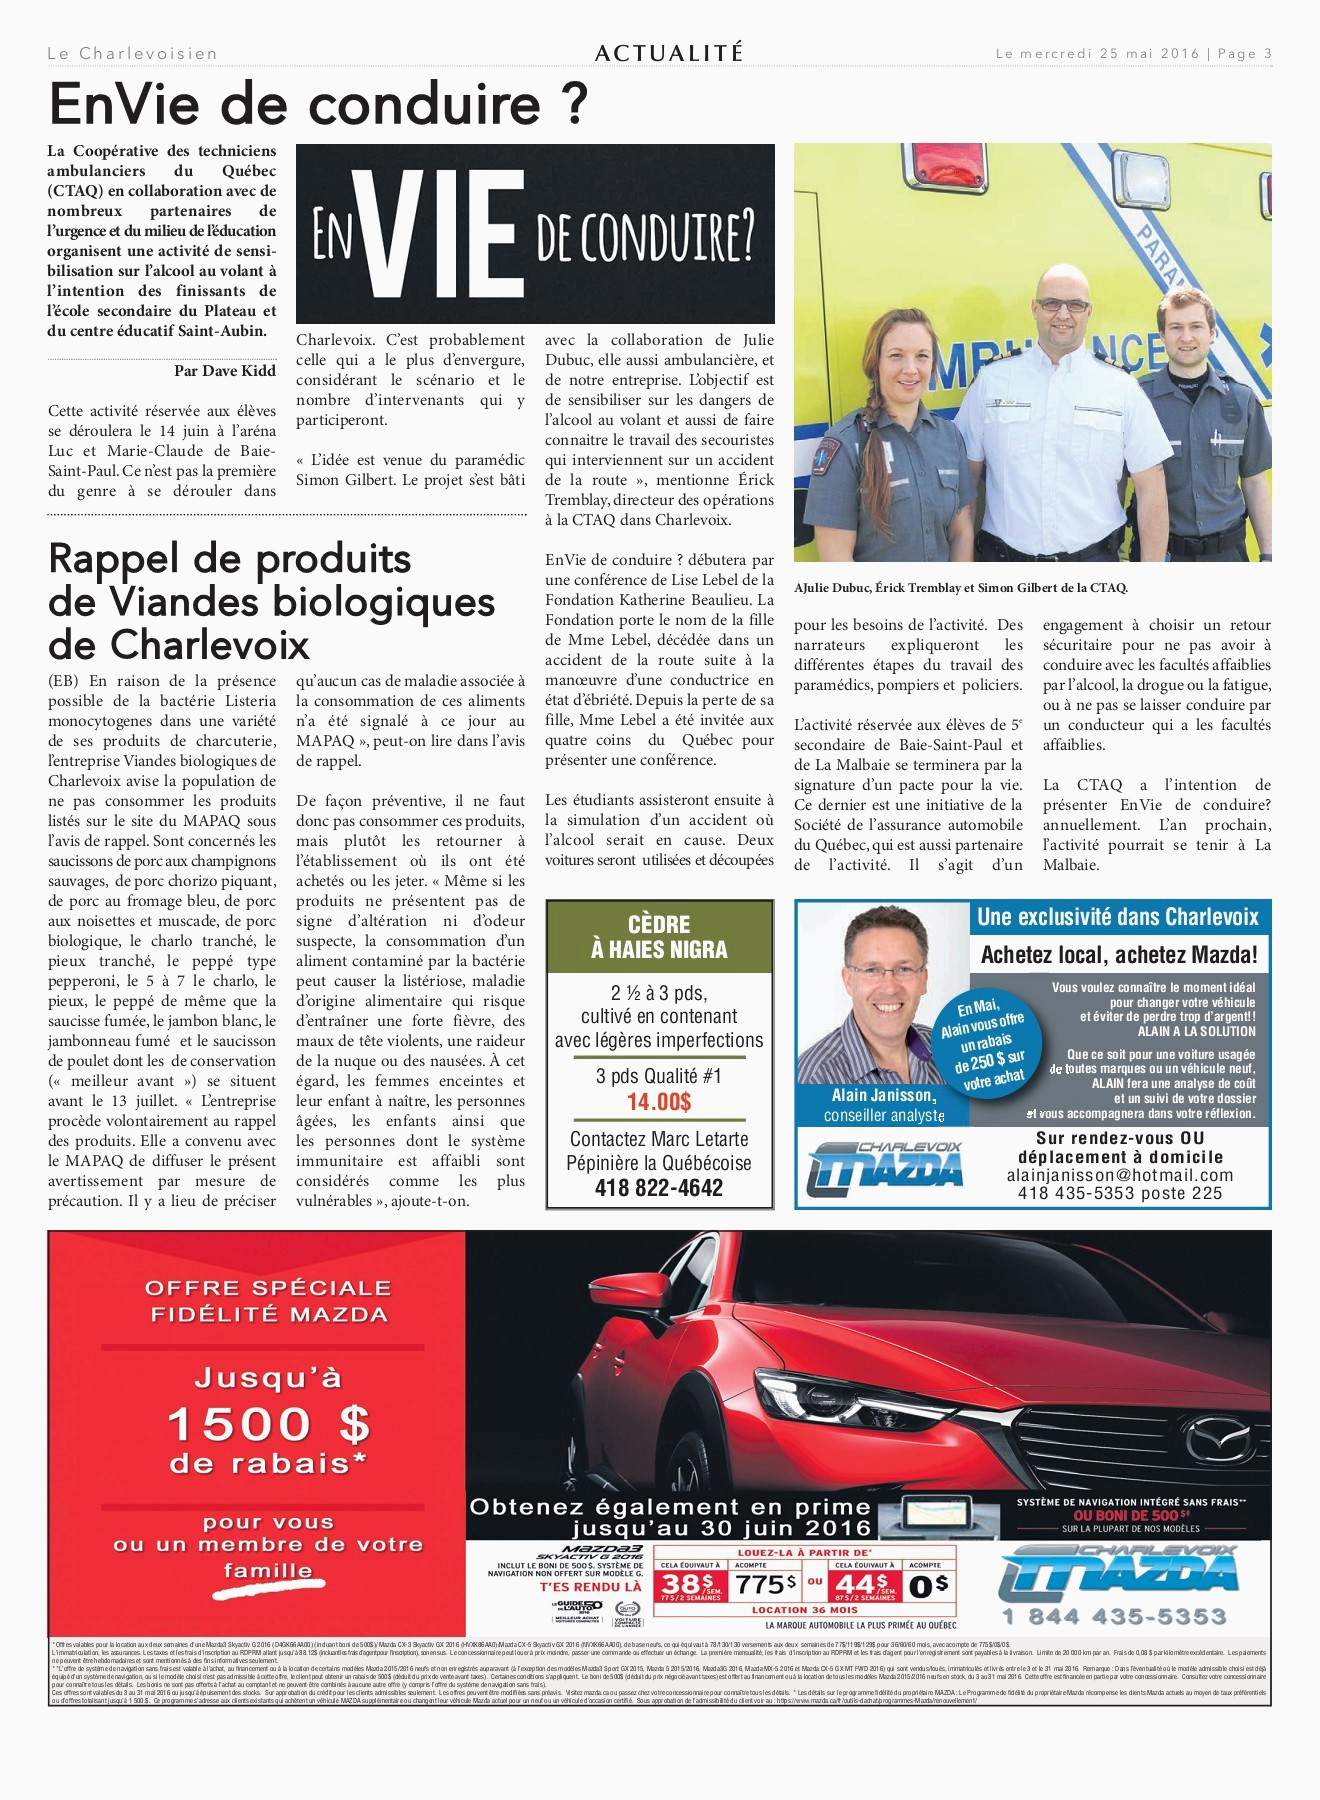 Le Charlevoisien 25 mai 2016 Pages 1 48 Text Version